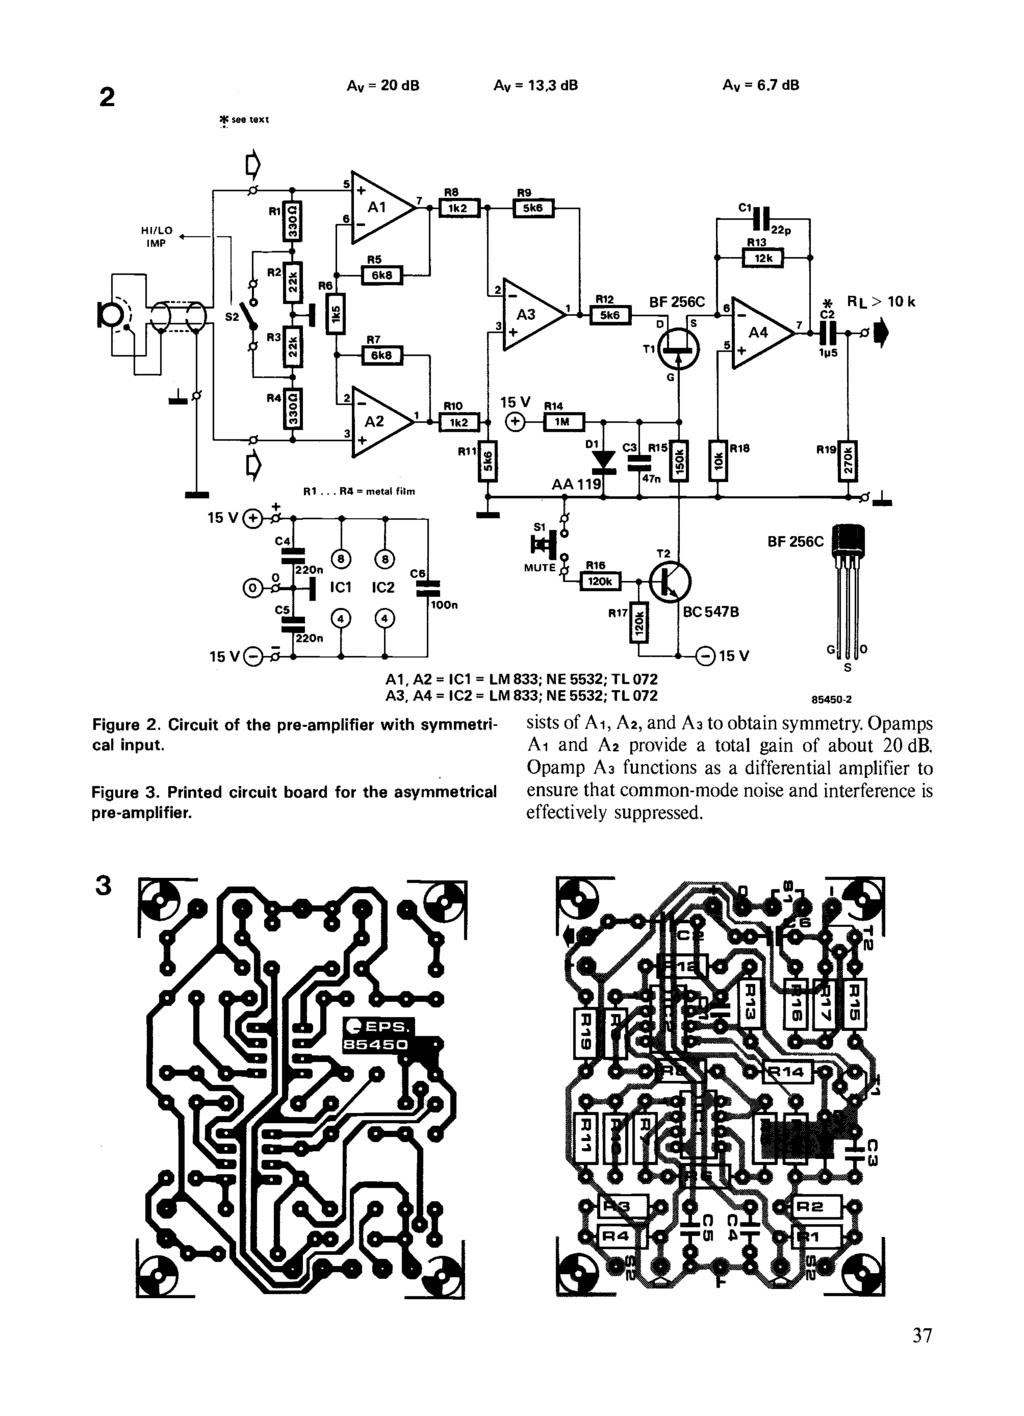 Circuits Elektor Electronics Pdf Stripboard Projects Timer No 1 Schematic The Rest Of Ron S 2 Ic See Text Av Db 133 6